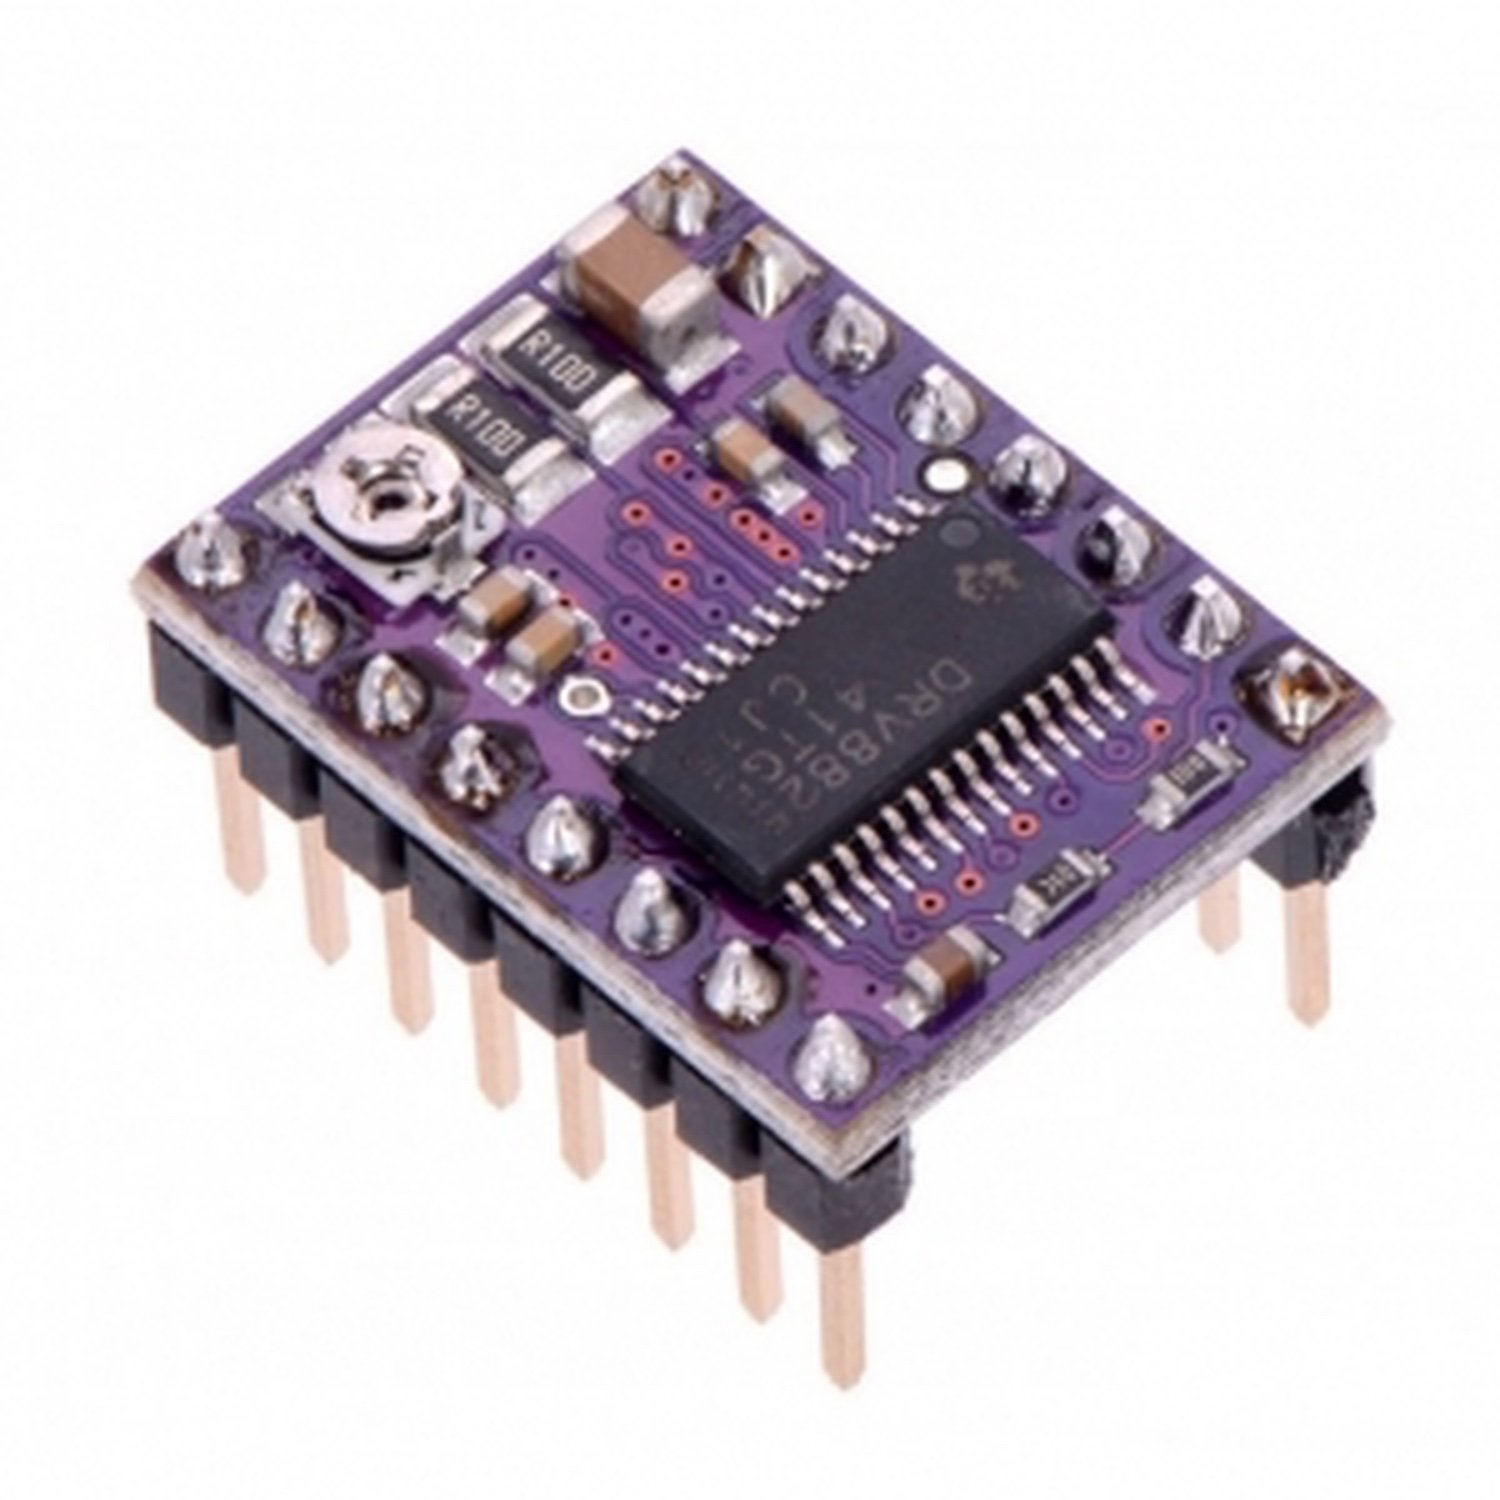 DRV8825 Stepper Engine Driver Carrier, High Current-ramps 1.4 rumba motherboard drv8825 a4988 stepper motor driver 12864 lcd display 4015 fan jumper wire for reprap 3d printer parts